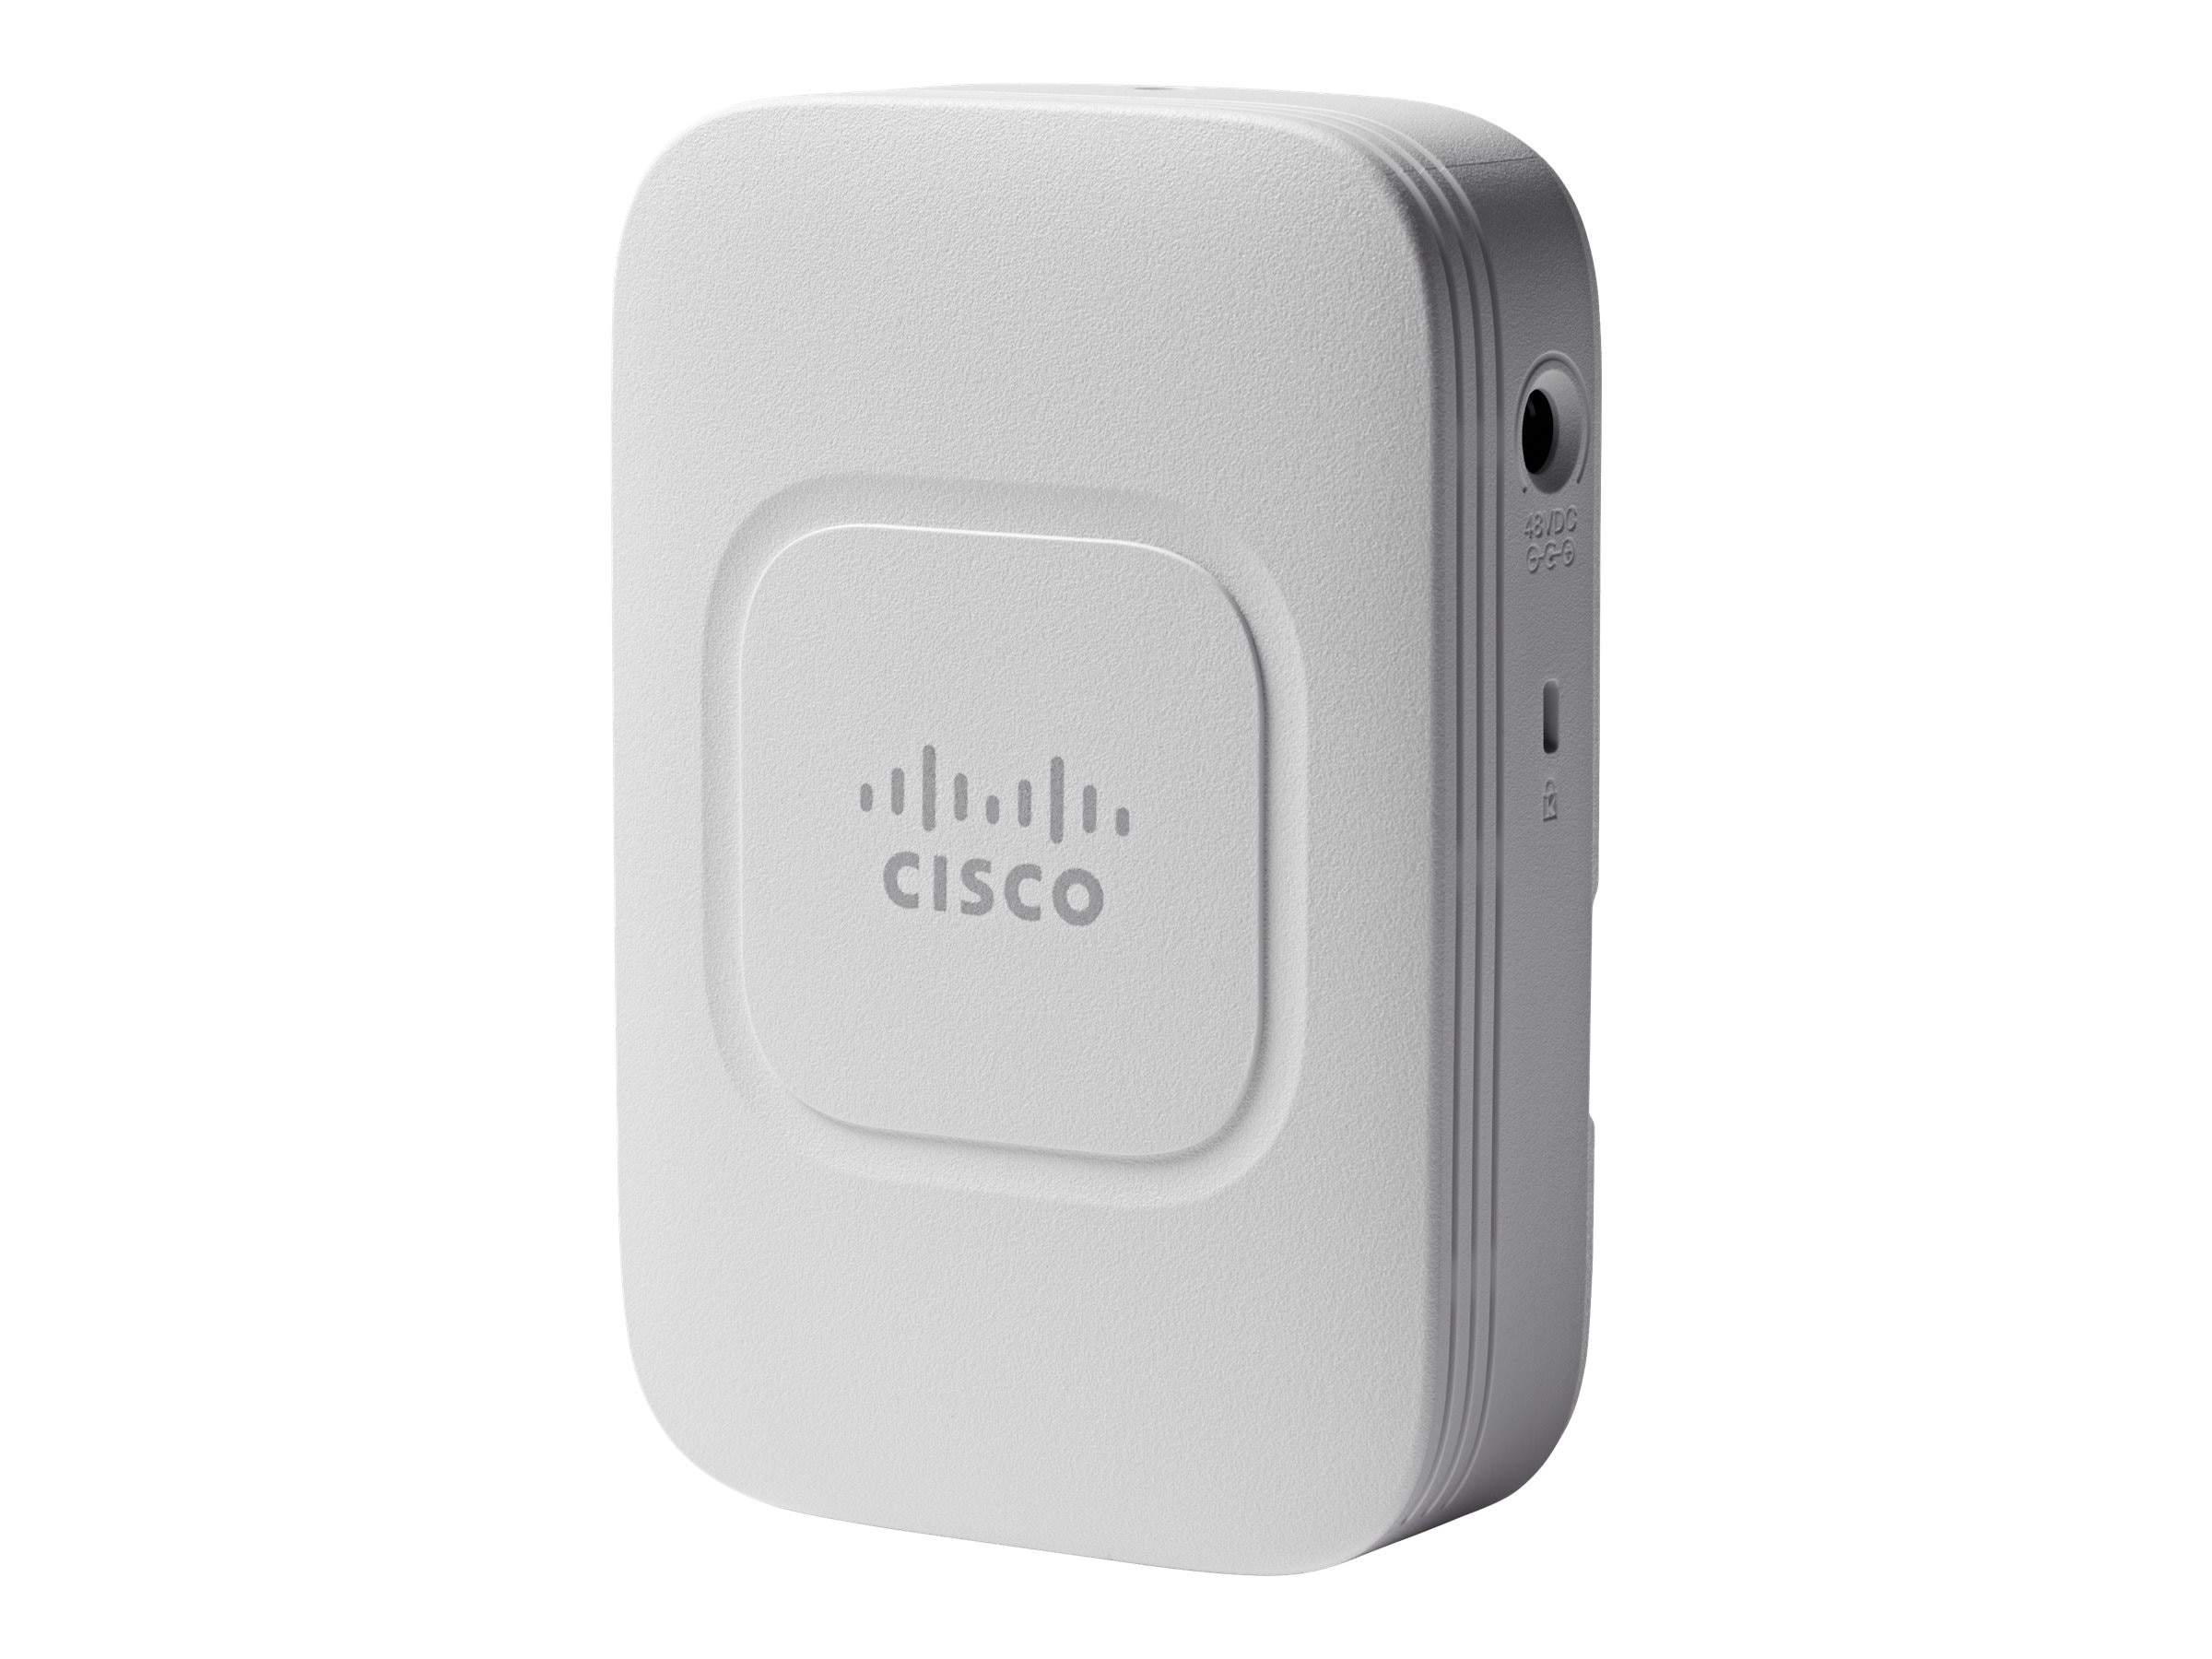 Cisco Aironet 702W AP w abgn, 2x2:2SS, 4GbE, Int Ant, A Domain (10-Pack), AIR-CAP702W-AK910, 17072975, Wireless Access Points & Bridges